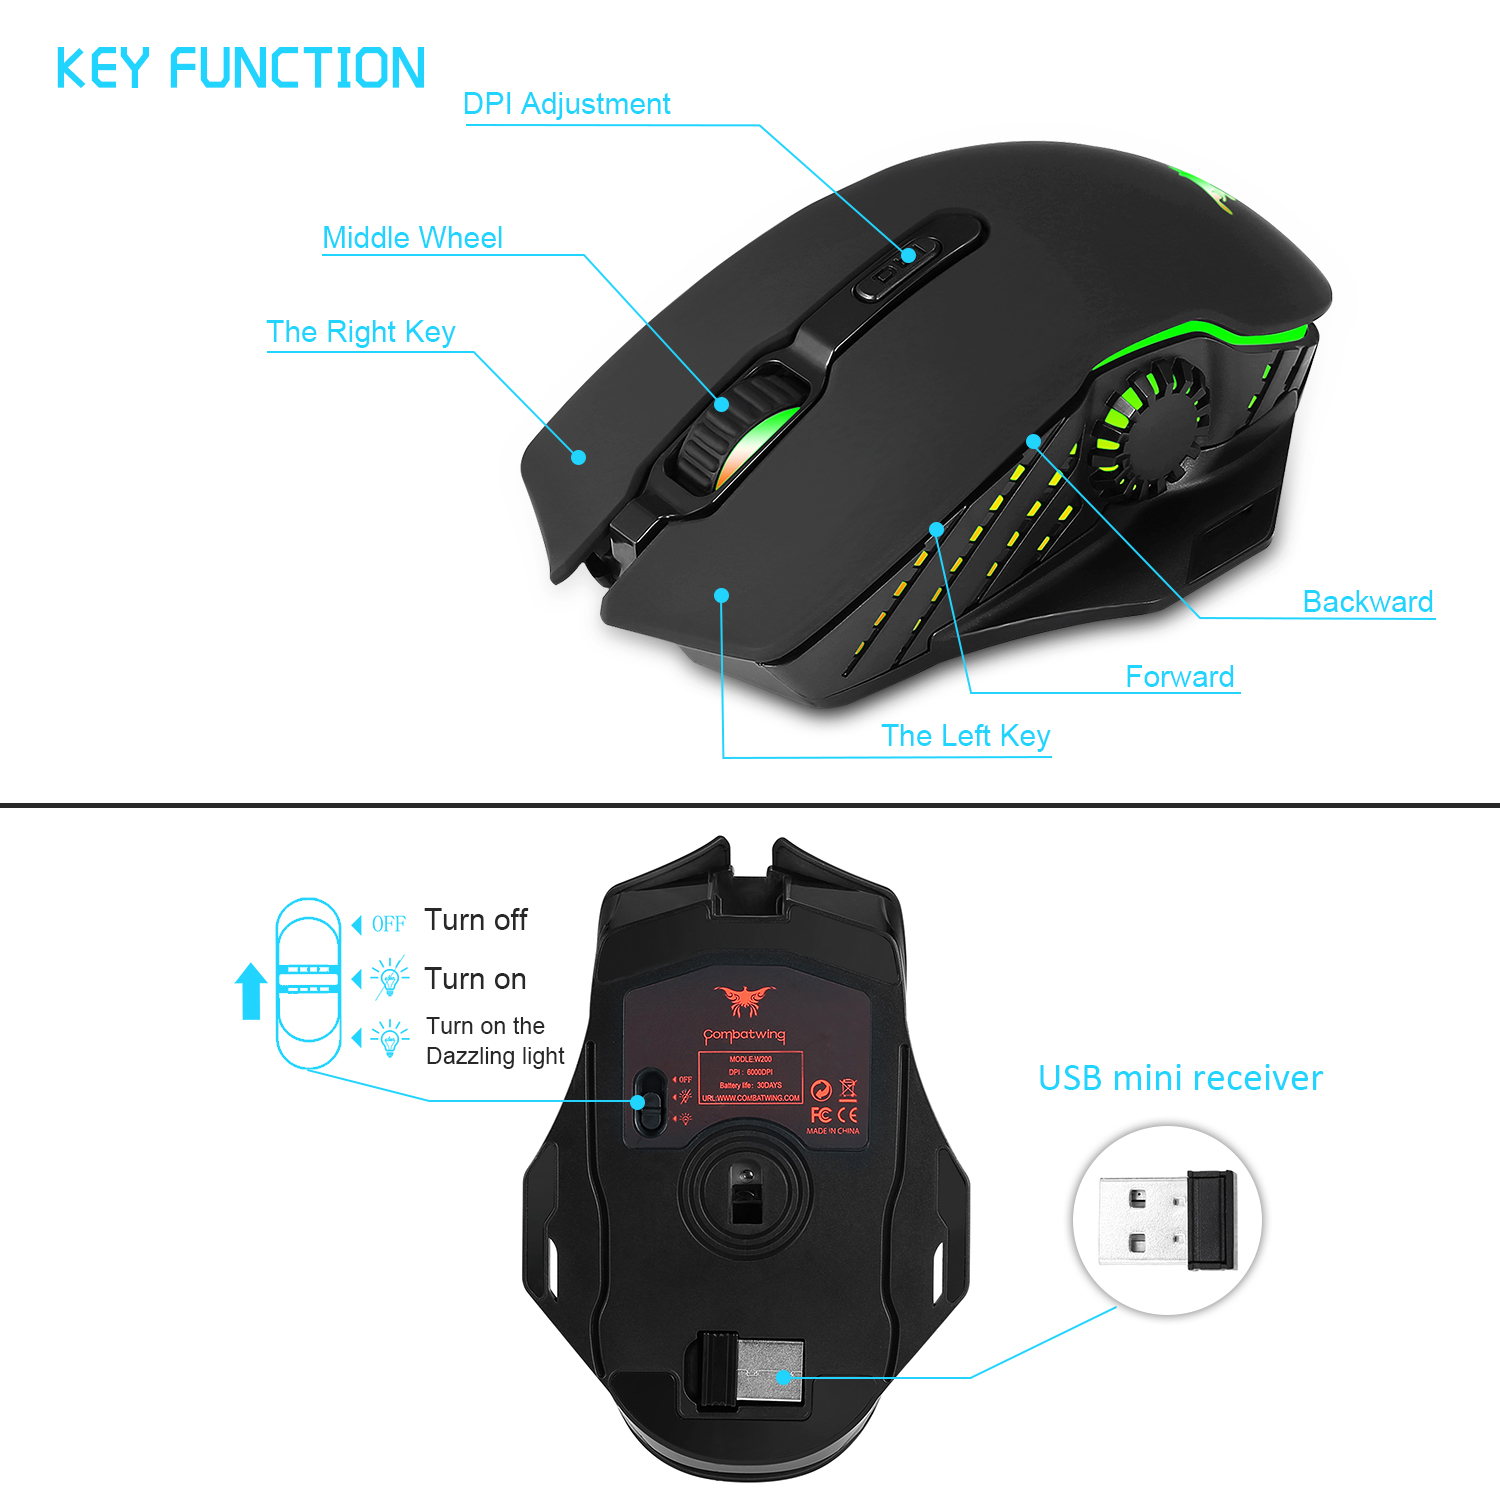 PC gaming mouse 2 4G wireless USB connection dual mode 6000 DPI optics ergonomics LOL Dota 2 PUBG gamer mice with mousepad set in Mice from Computer Office